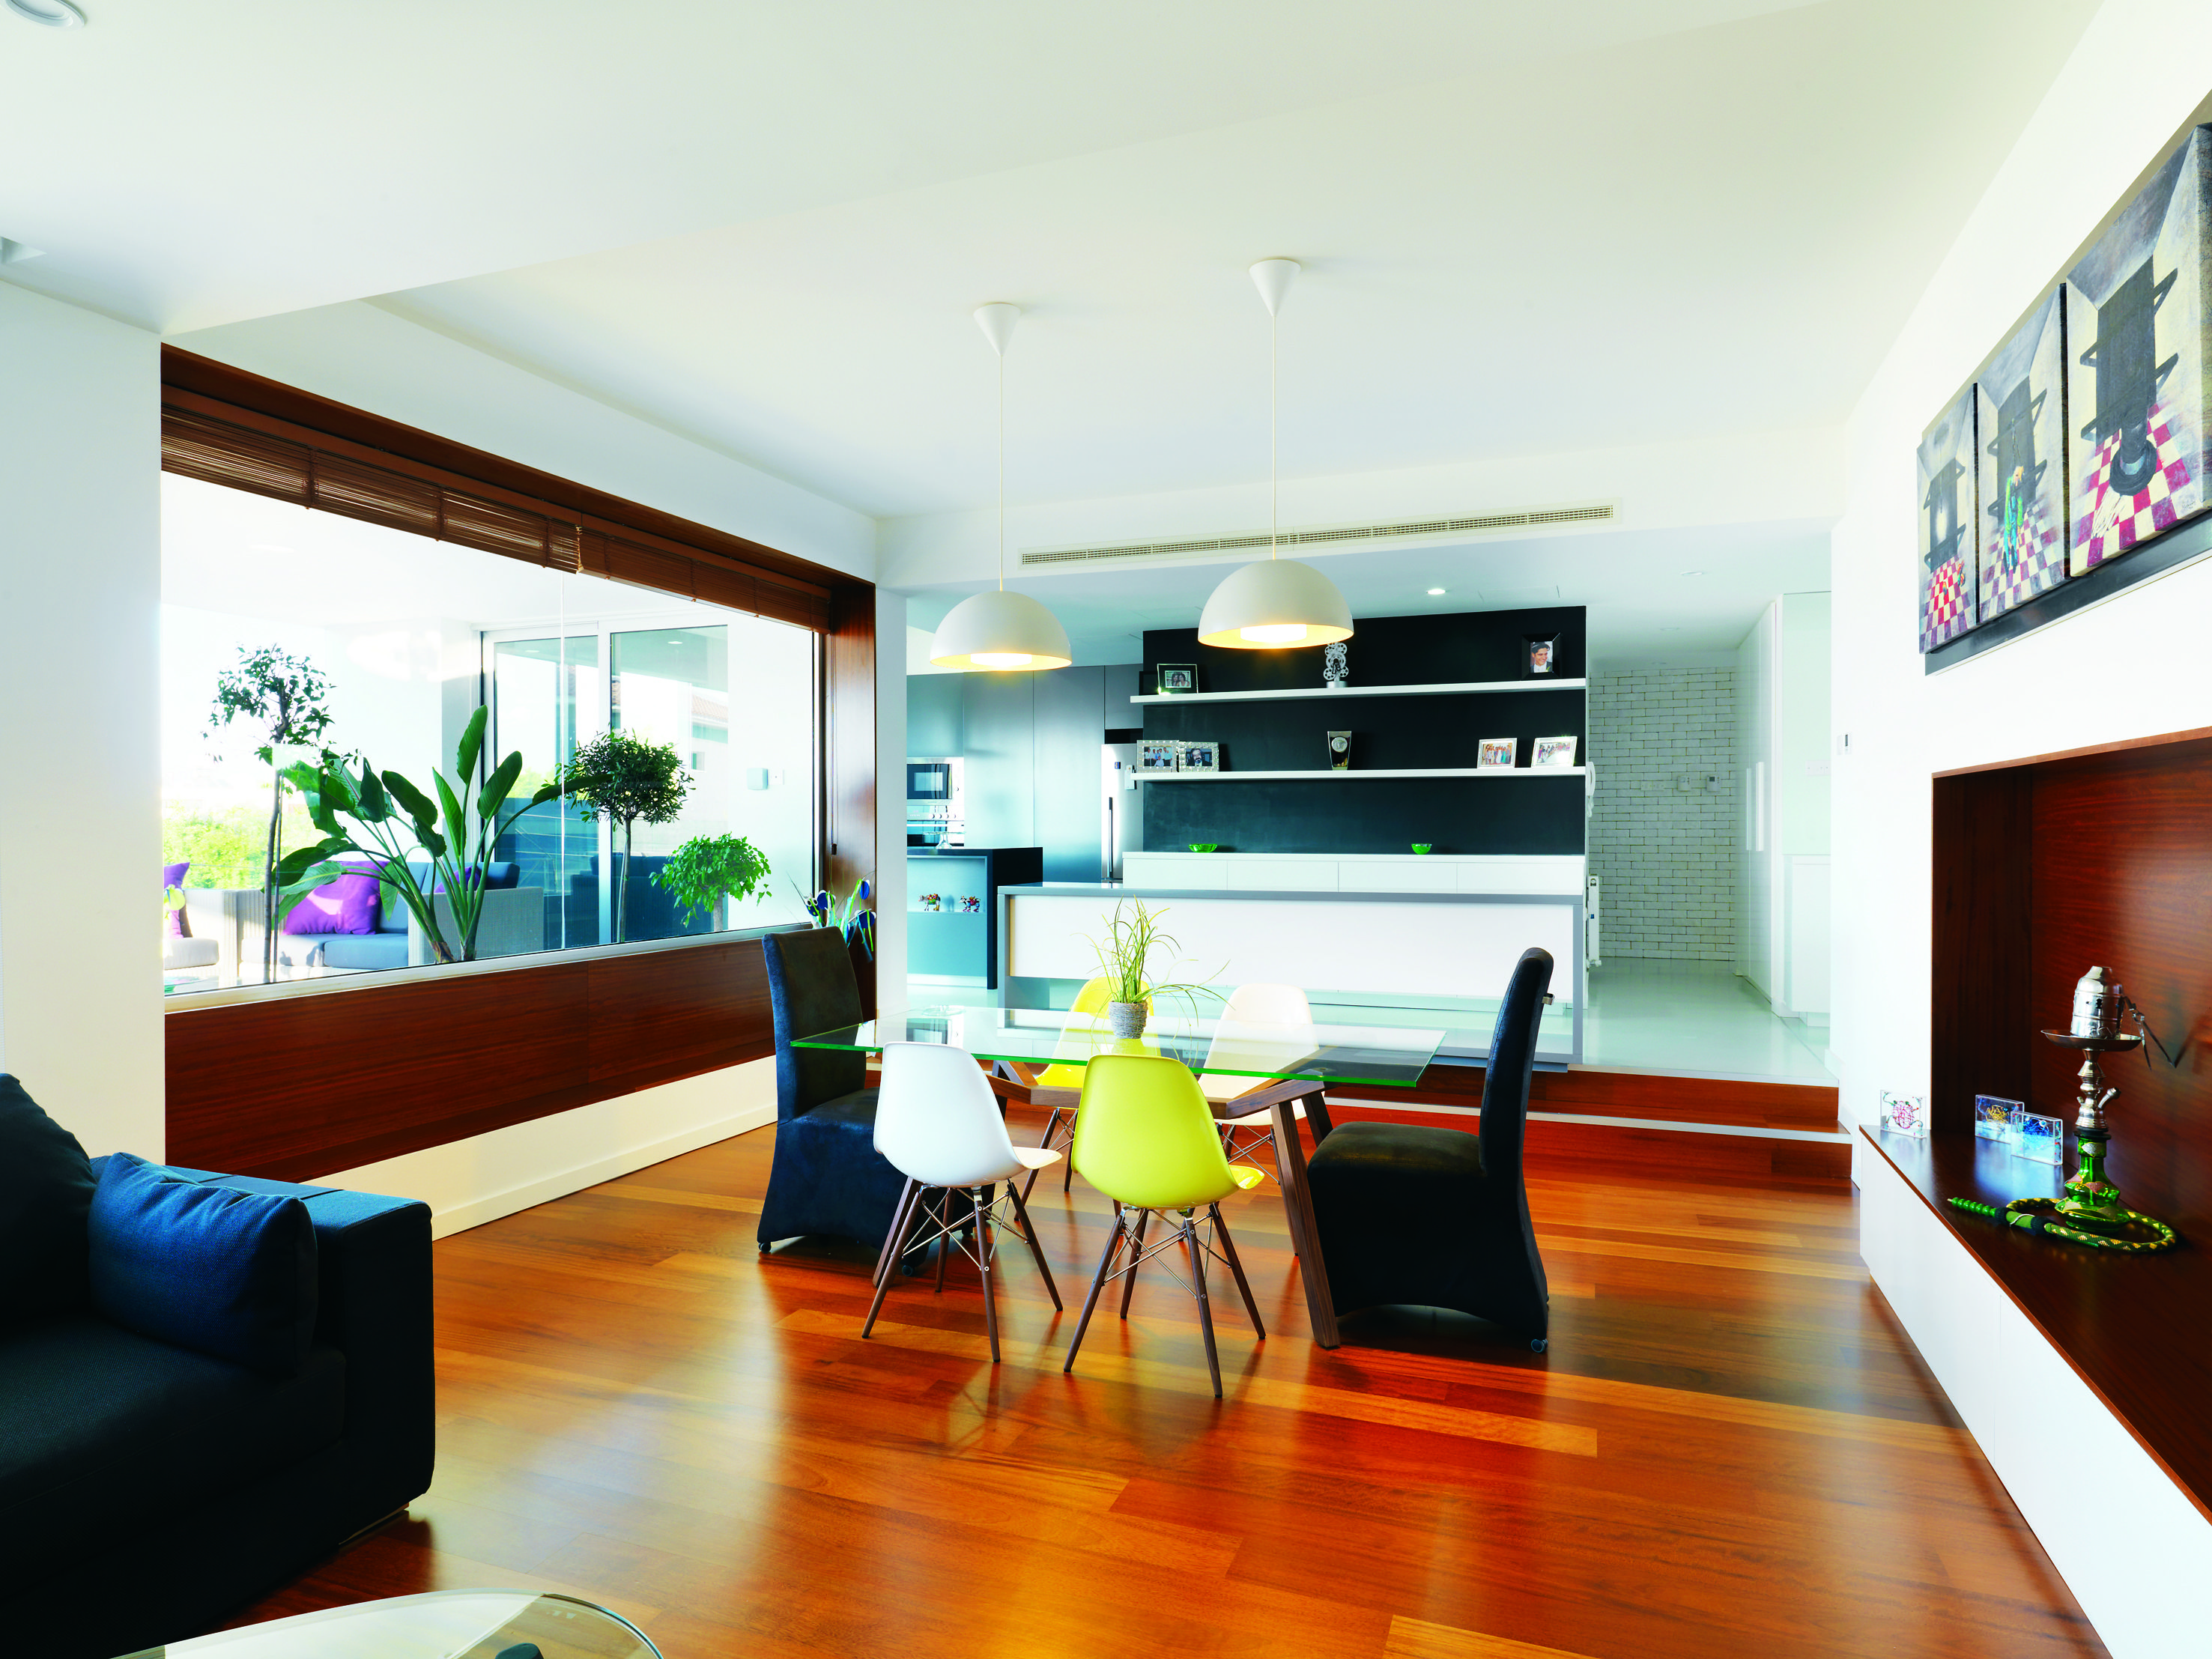 Residential Project Renovation Refurbishment and unification of